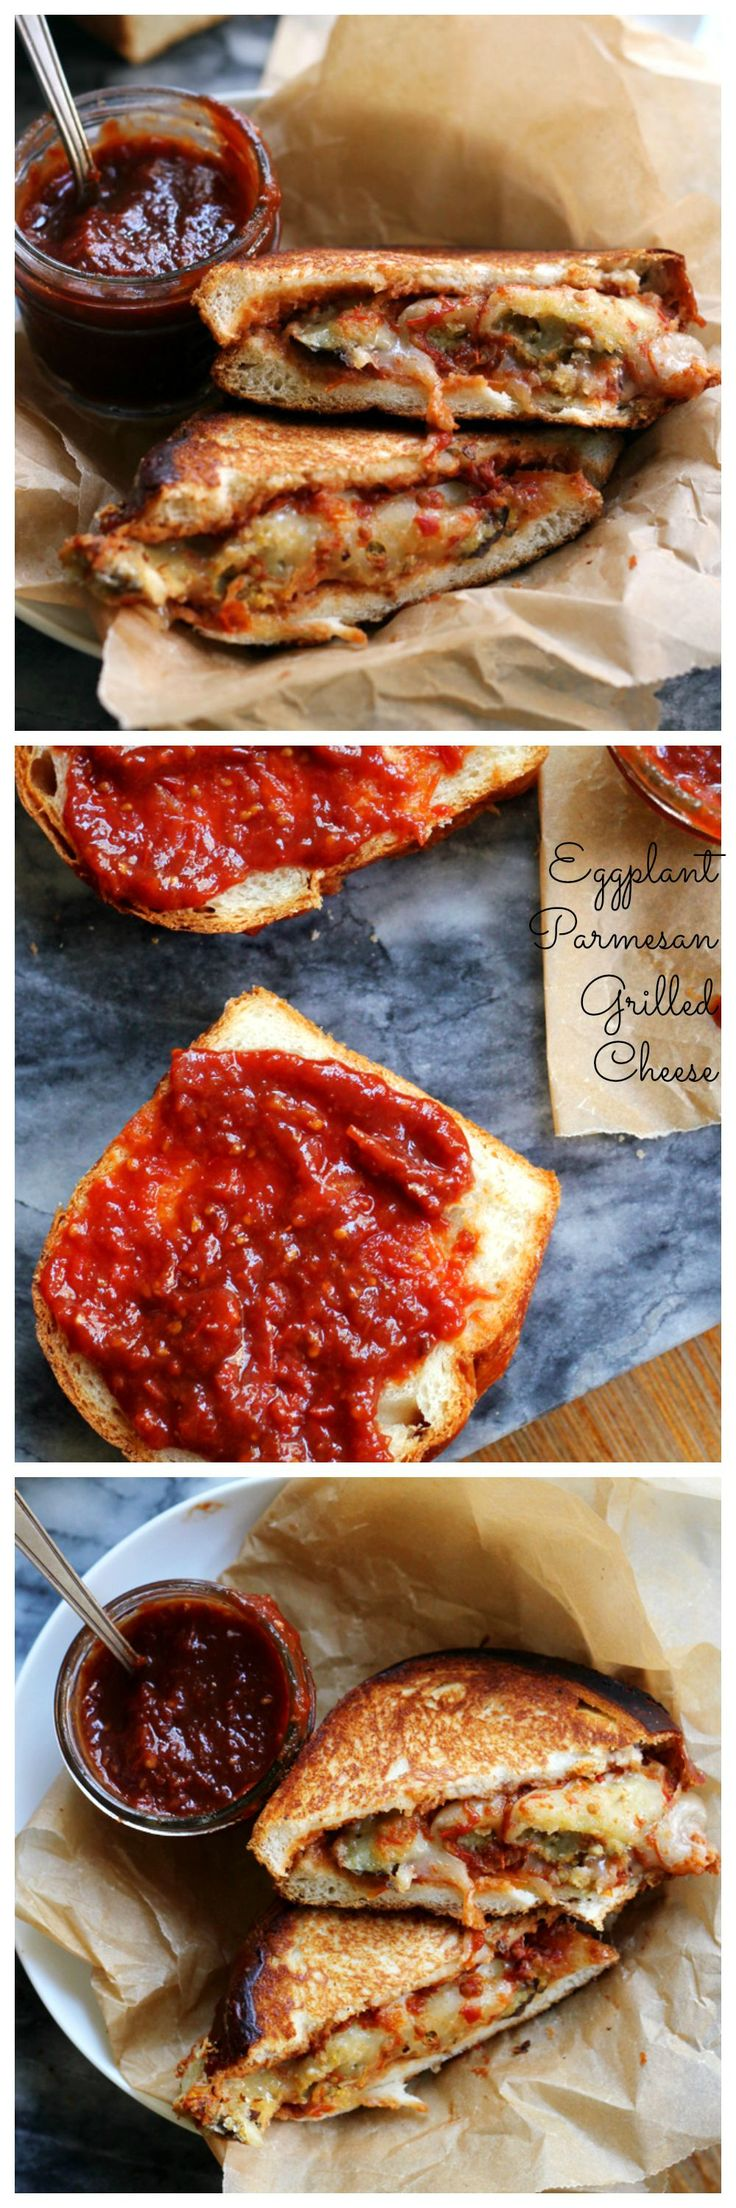 is what this sandwich is all about! Get this eggplant parmesan grilled ...